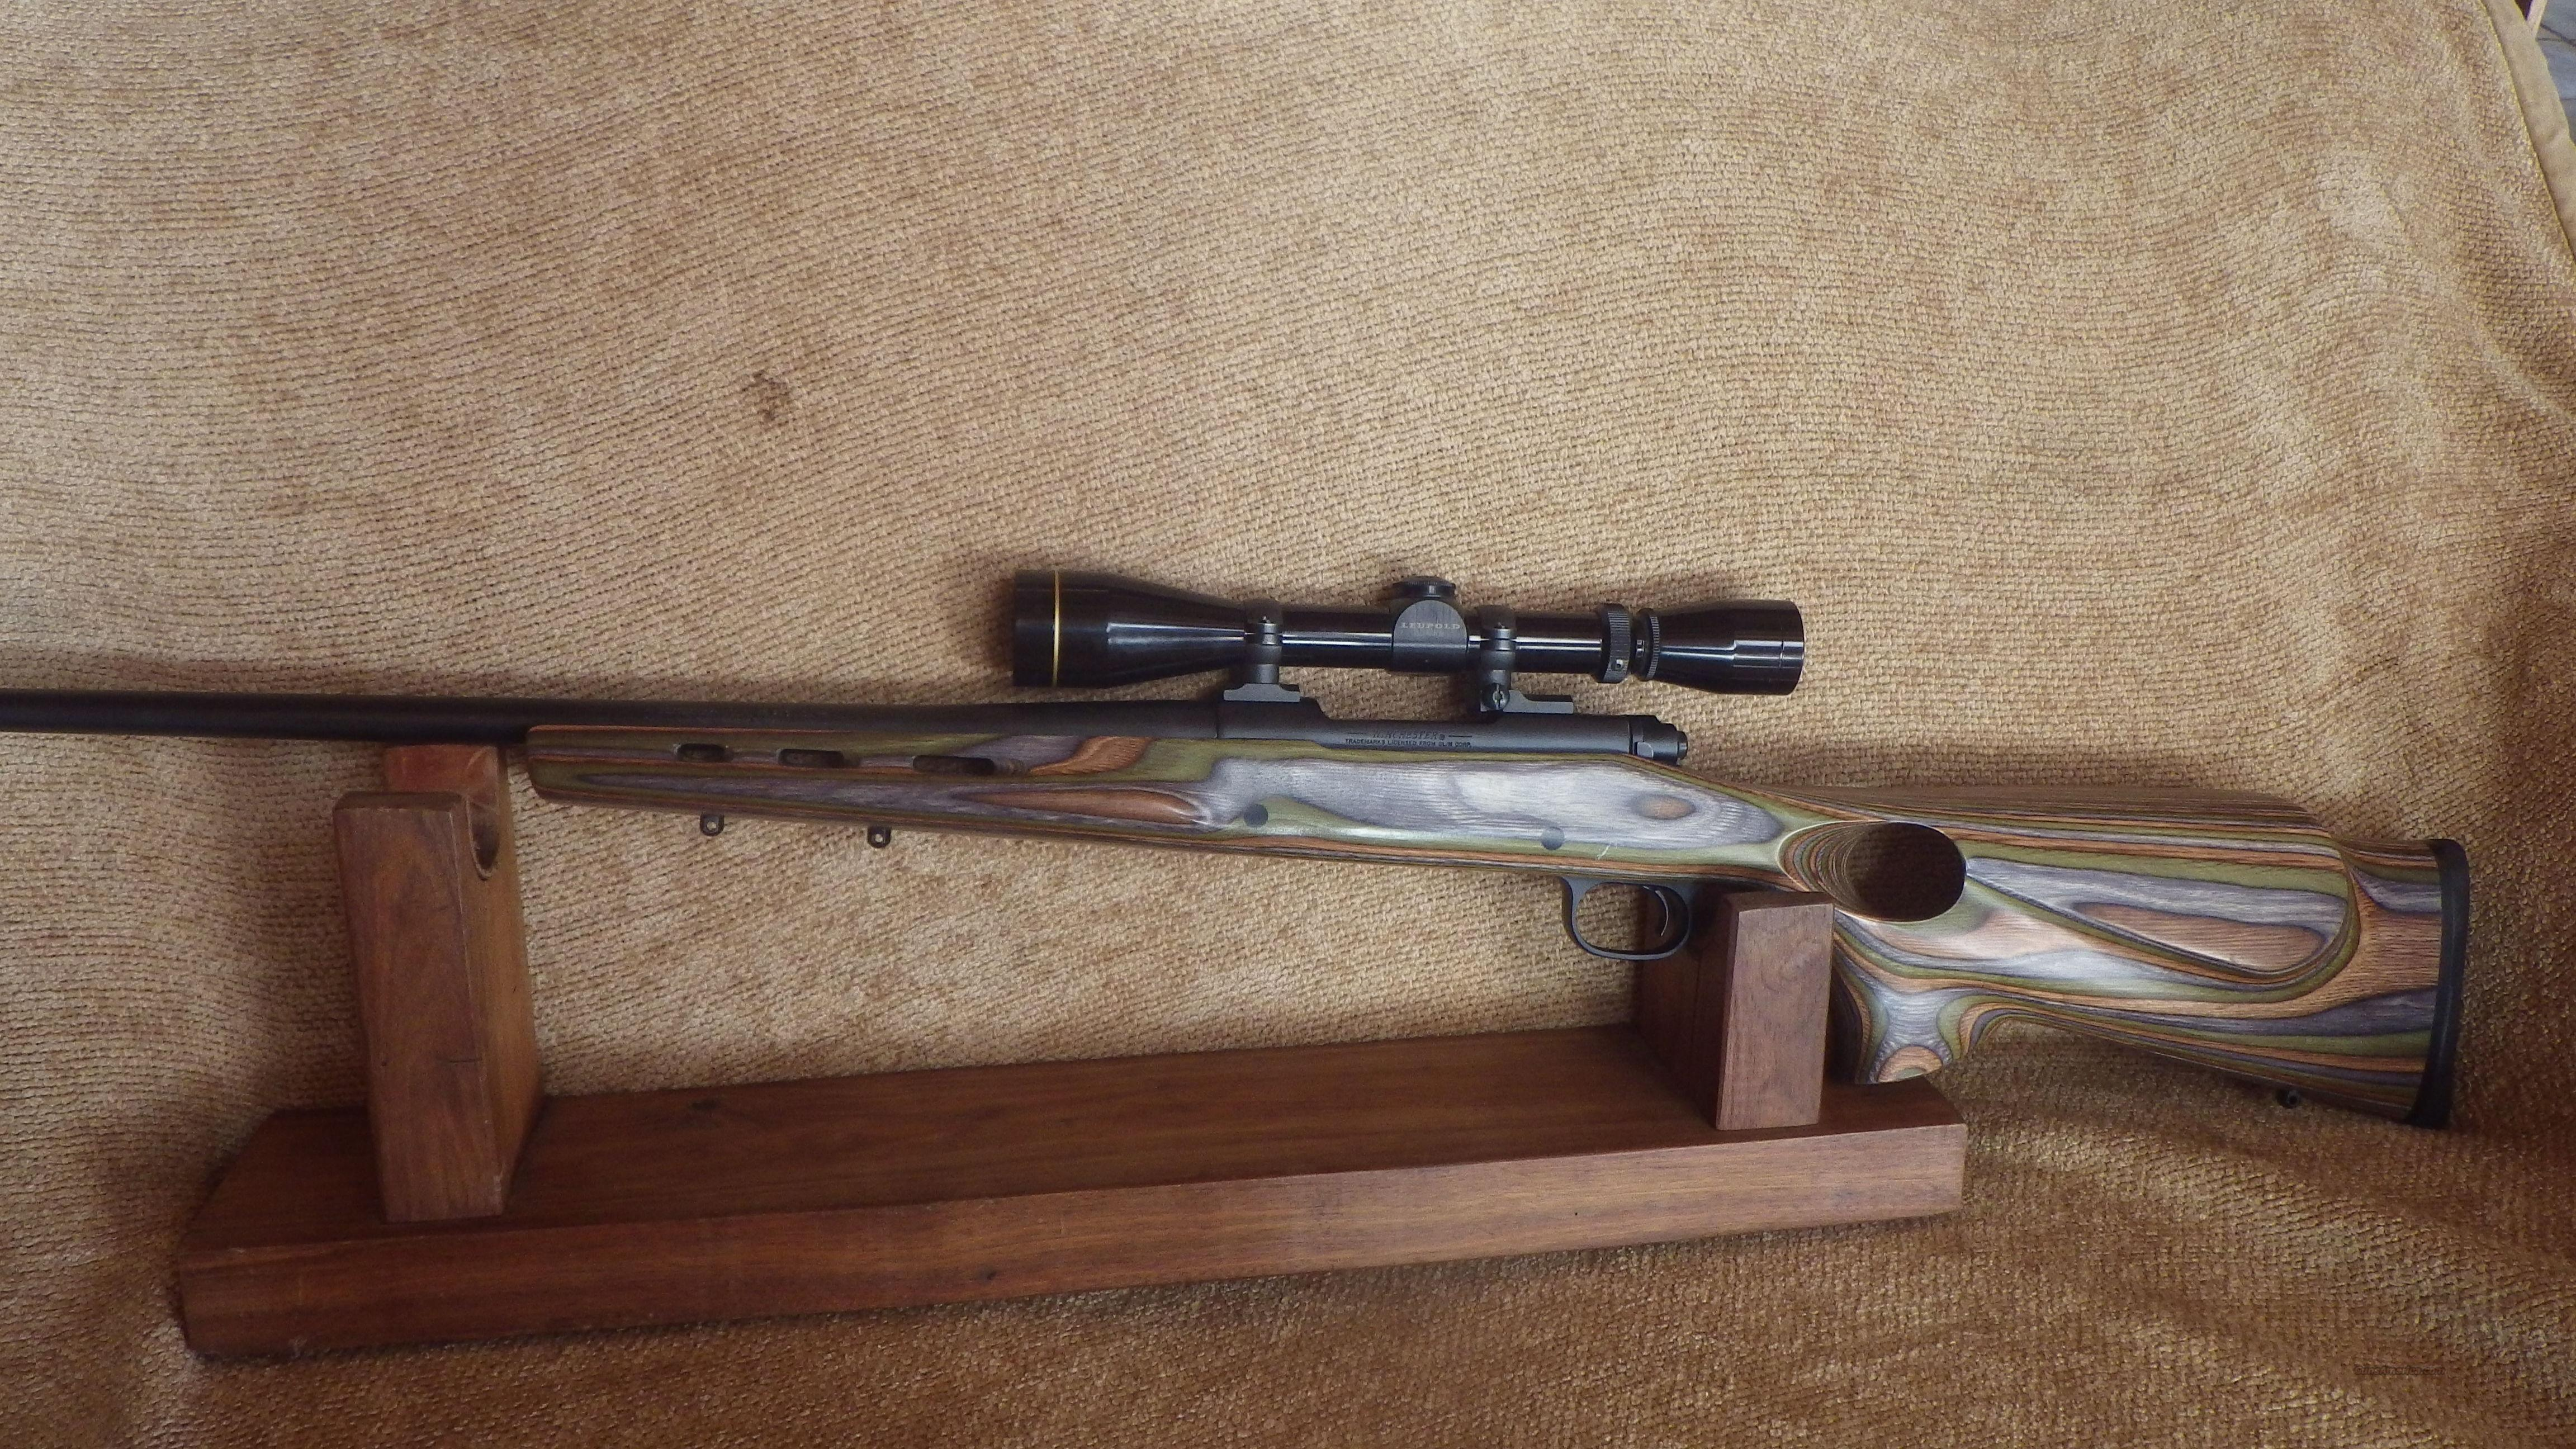 Winchester Model 70 Shadow 270 WSM with Boyd Thumbhole Stock and Leupold VariX II 3X9X40 Scope Like New  Includes Lee Dies And 24 Rds new Winchester Brass   Guns > Rifles > Winchester Rifles - Modern Bolt/Auto/Single > Model 70 > Post-64